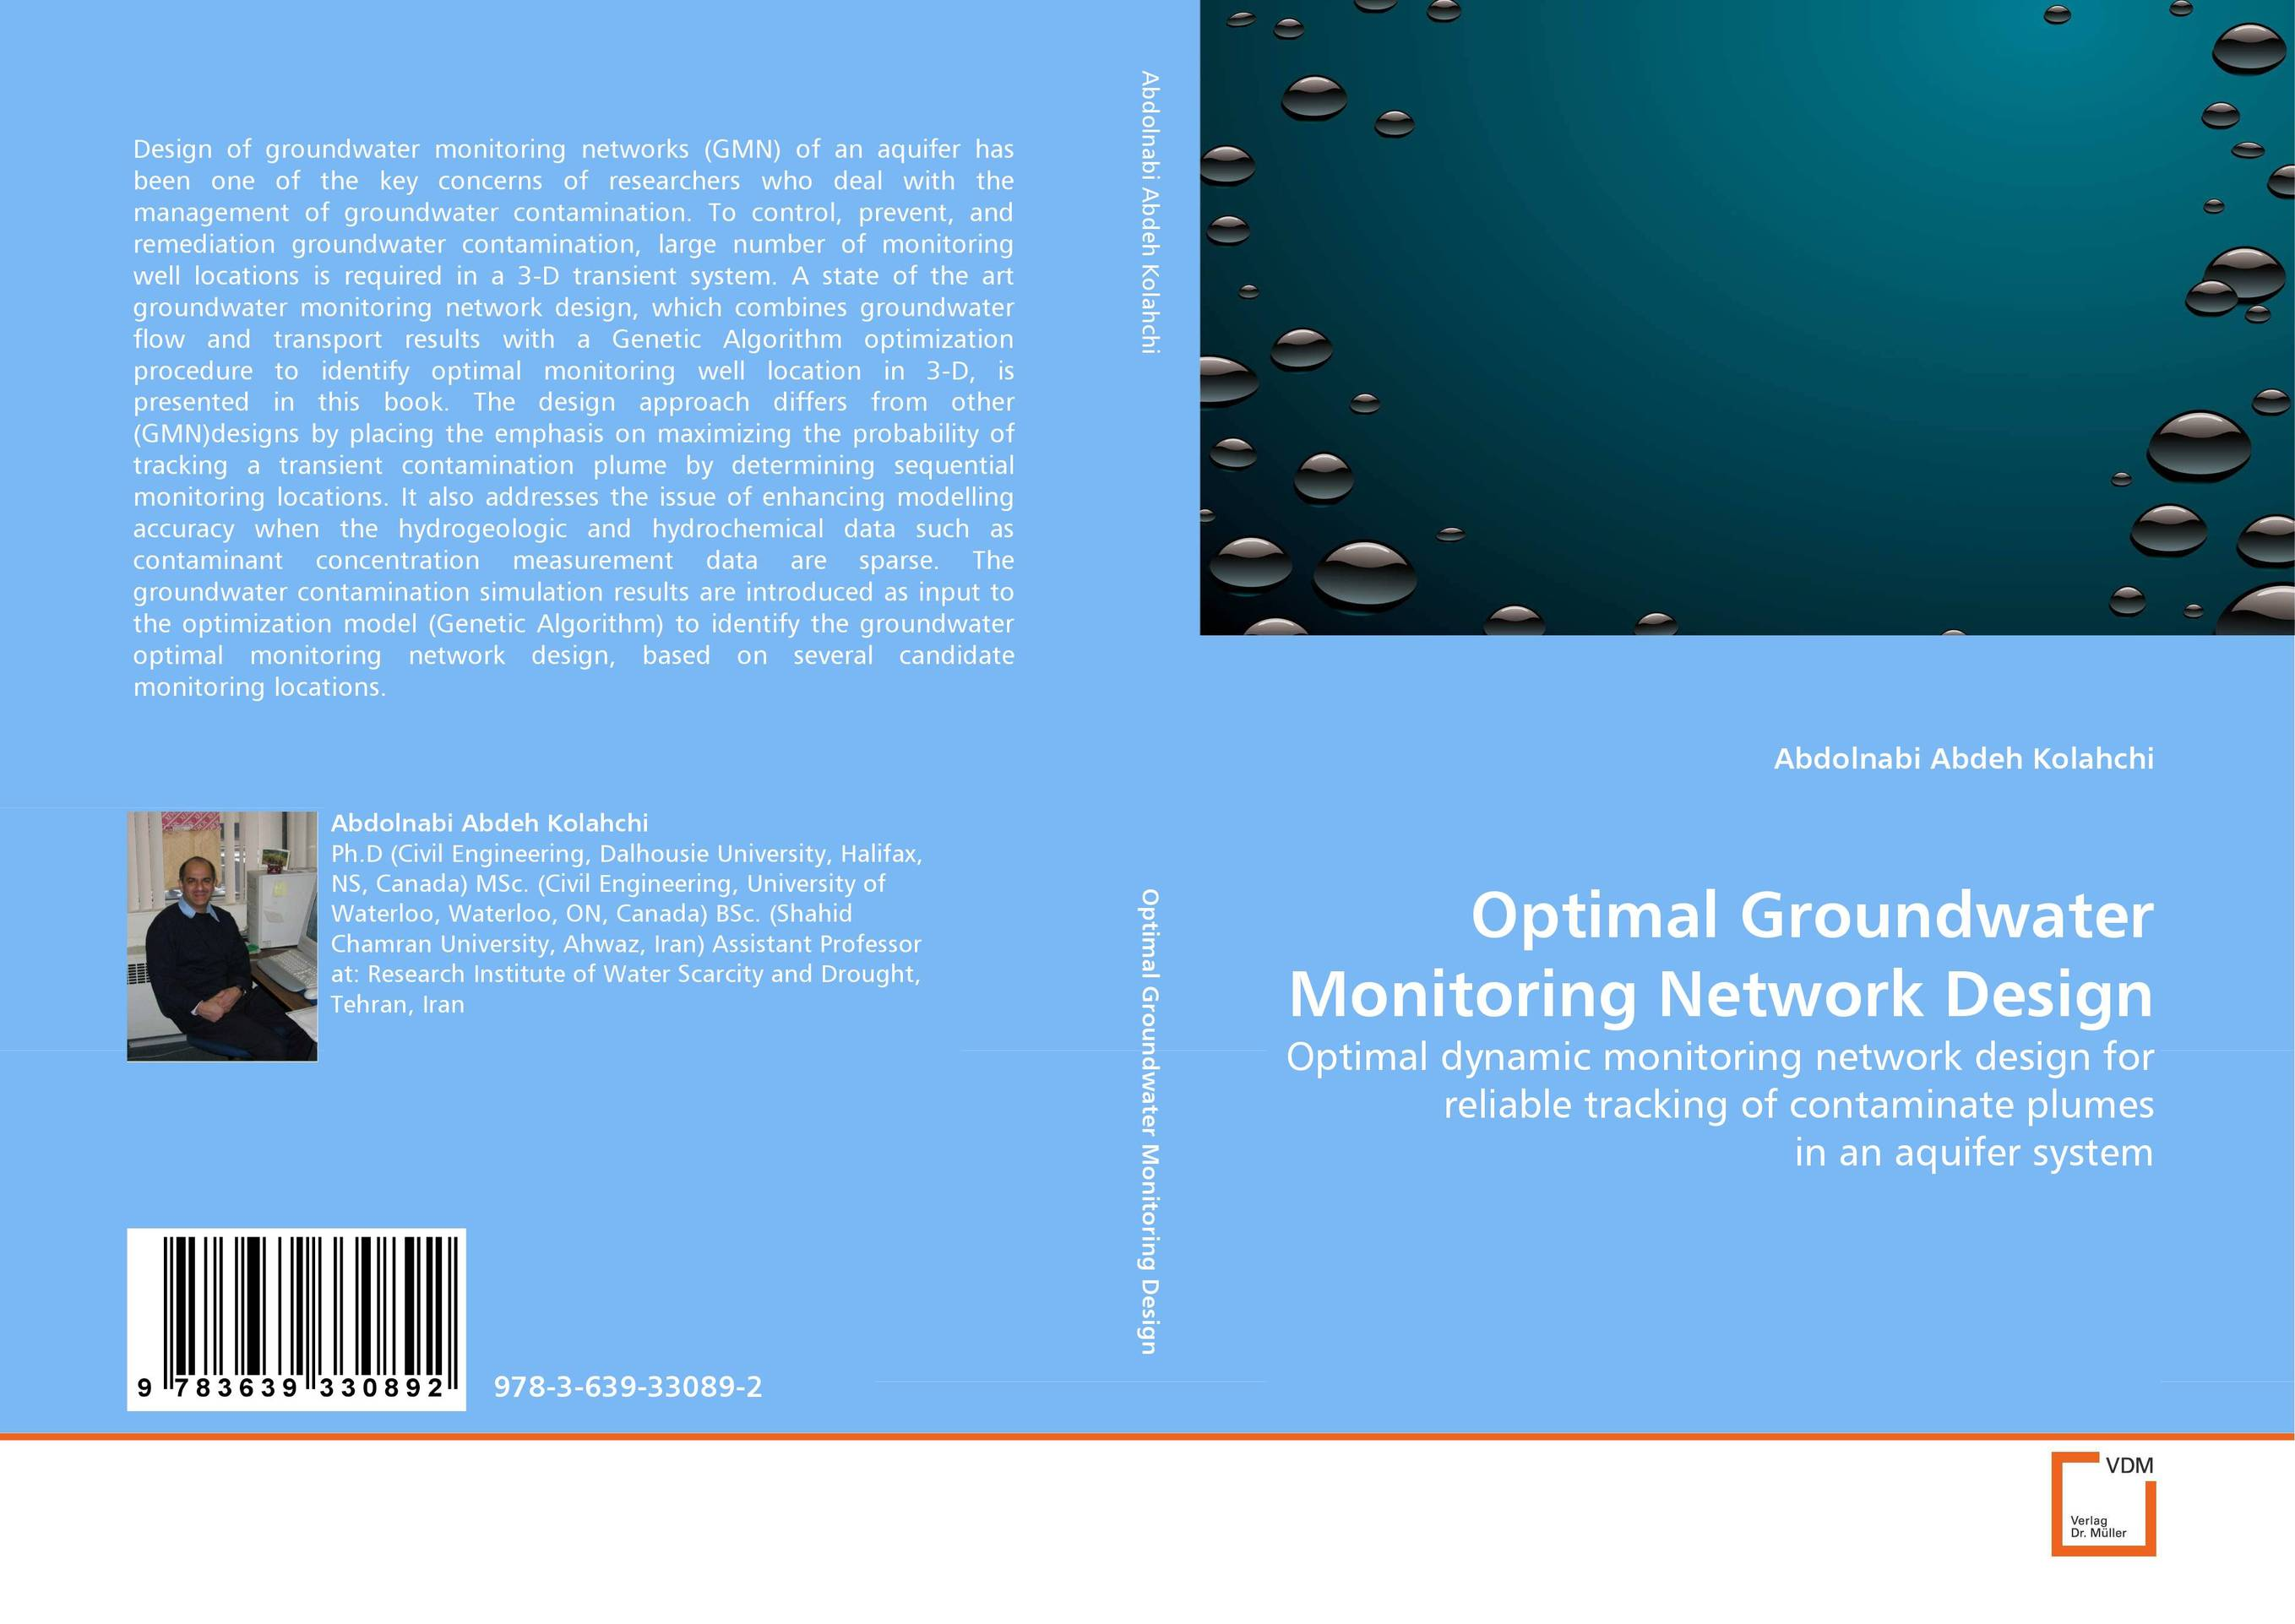 Optimal Groundwater Monitoring Network Design locations